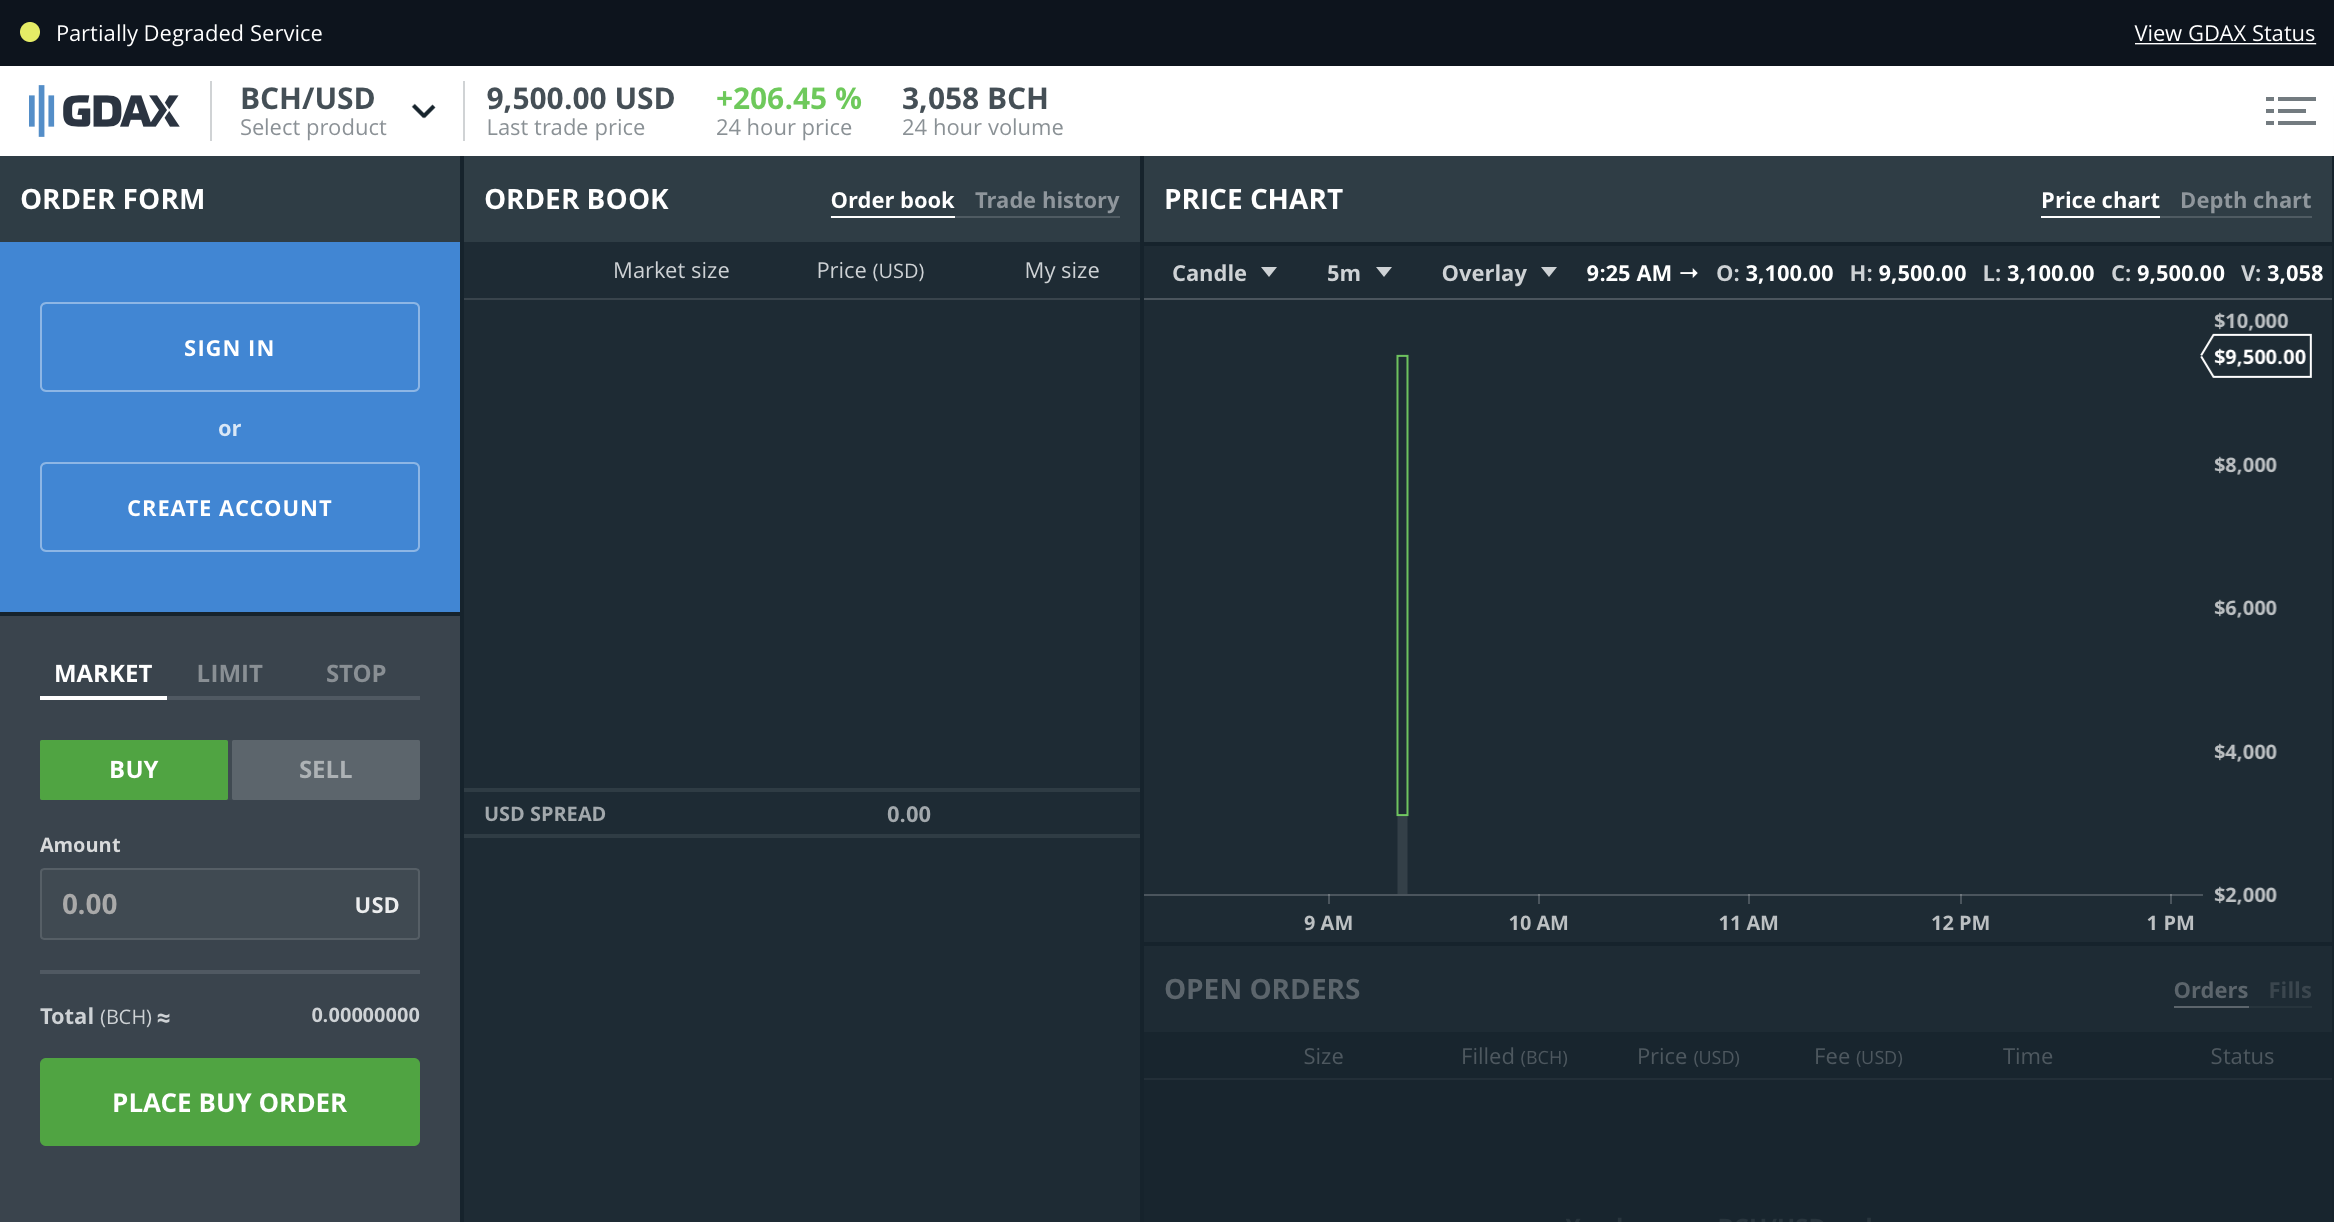 GDAX price for bitcoin cash and US dollars on Dec. 20, 2017